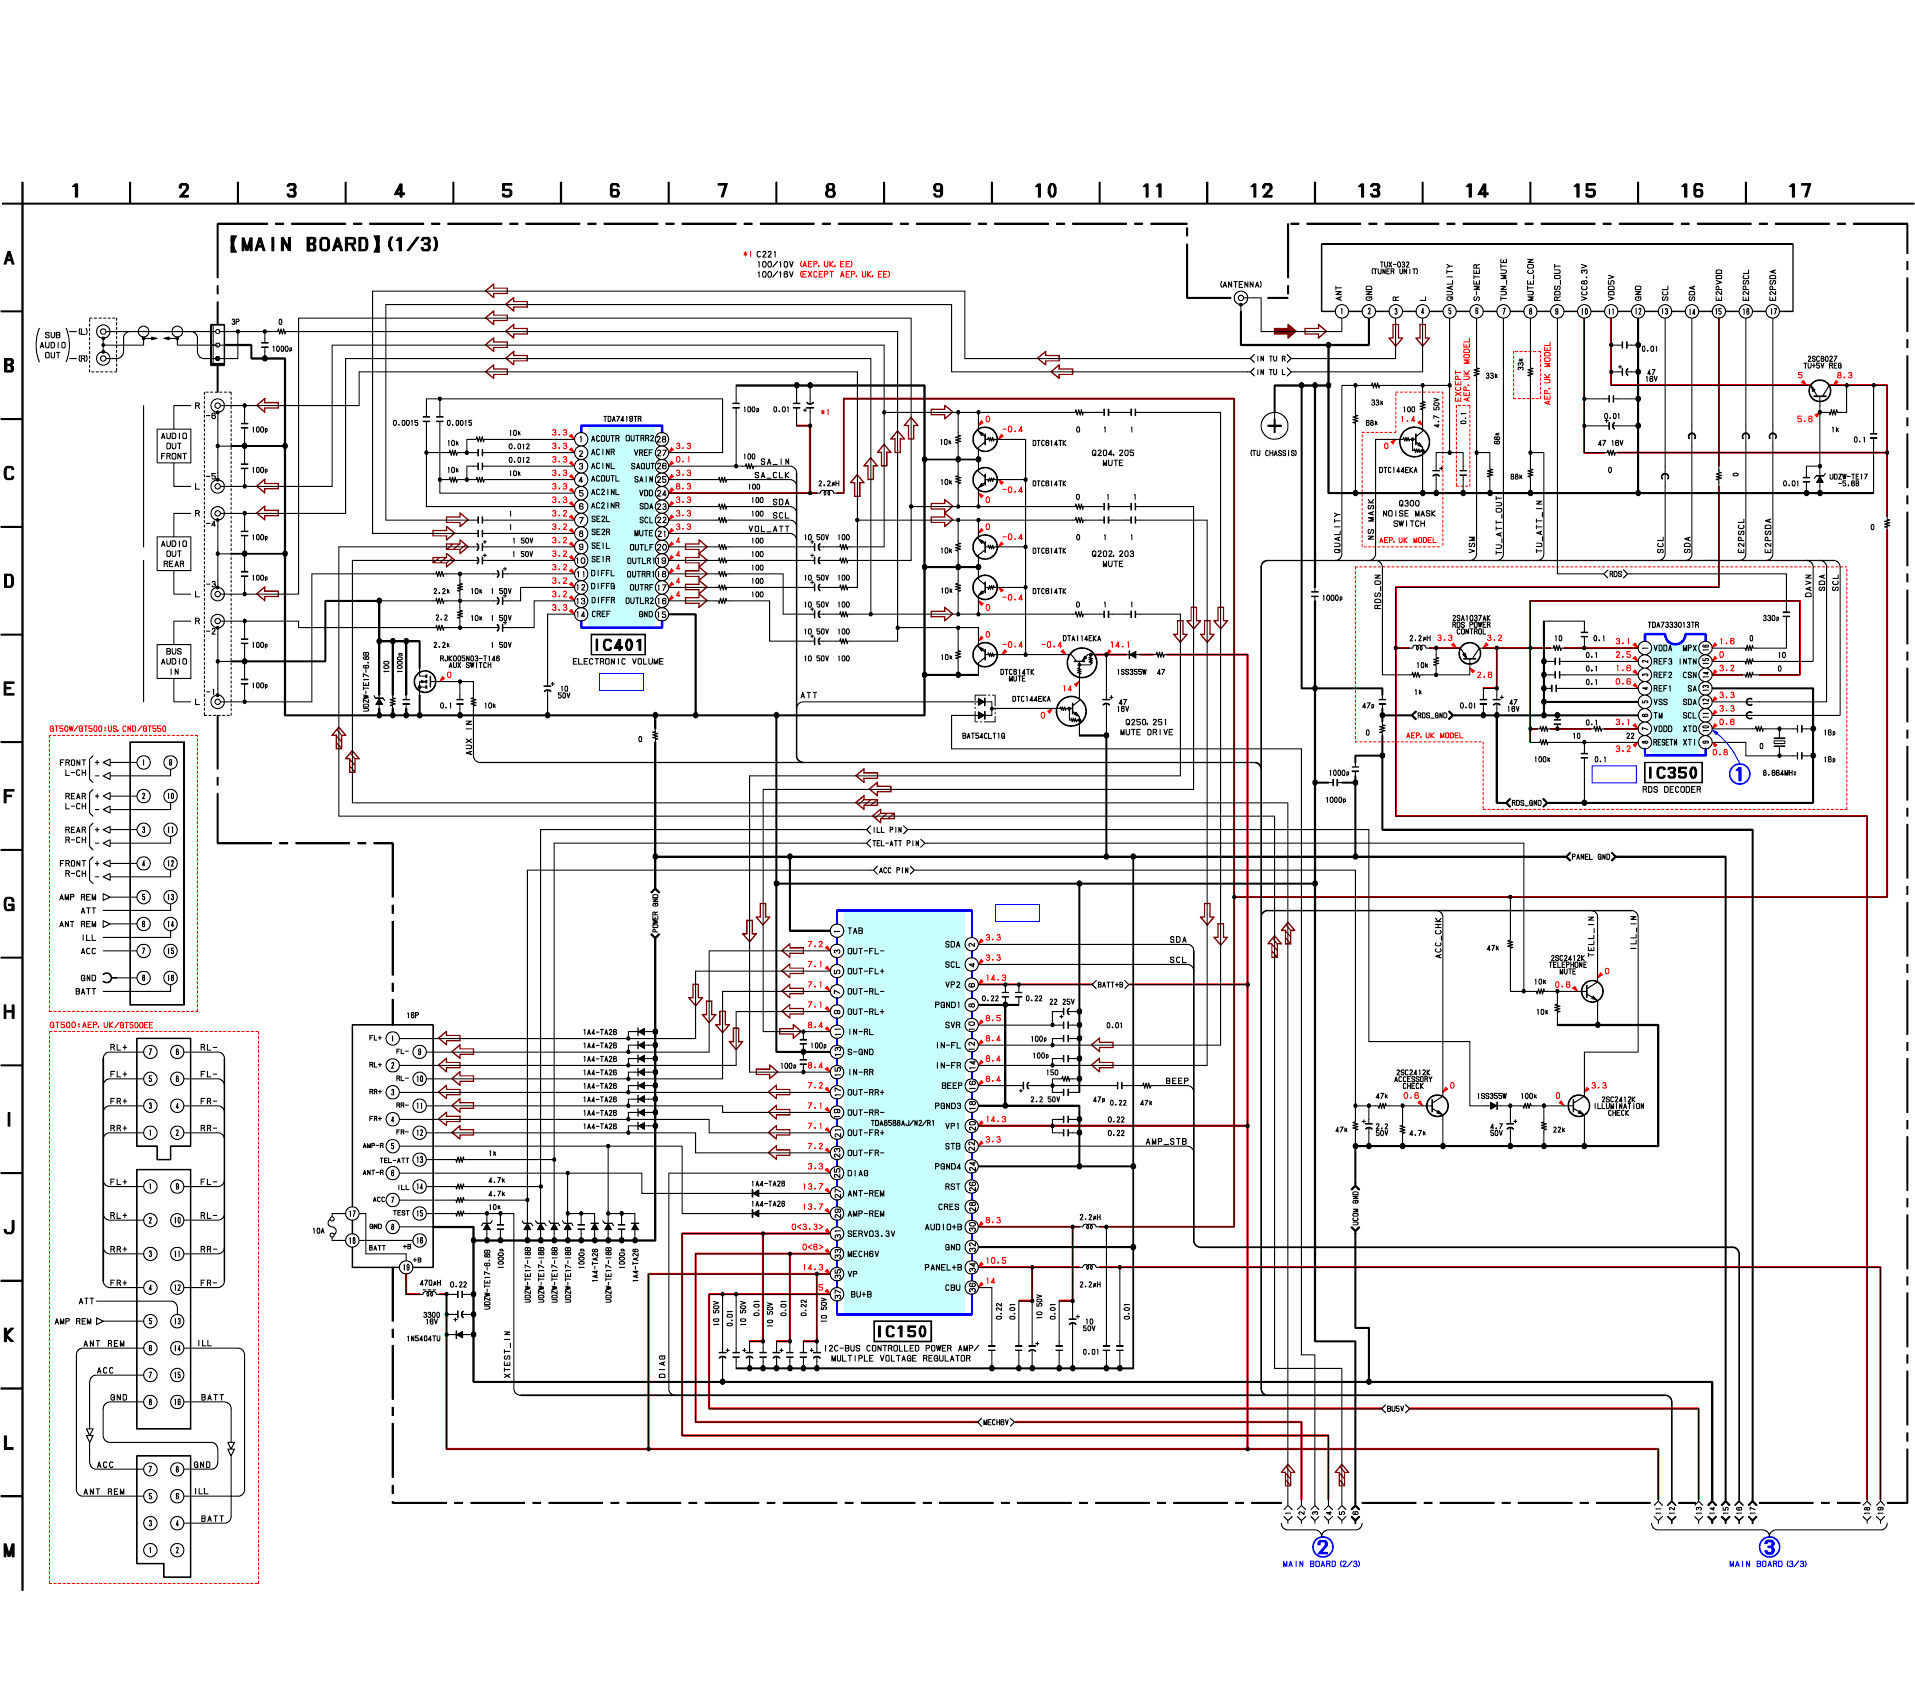 Sony Cdx Gt110 Wiring Diagram from pdfasset.owneriq.net